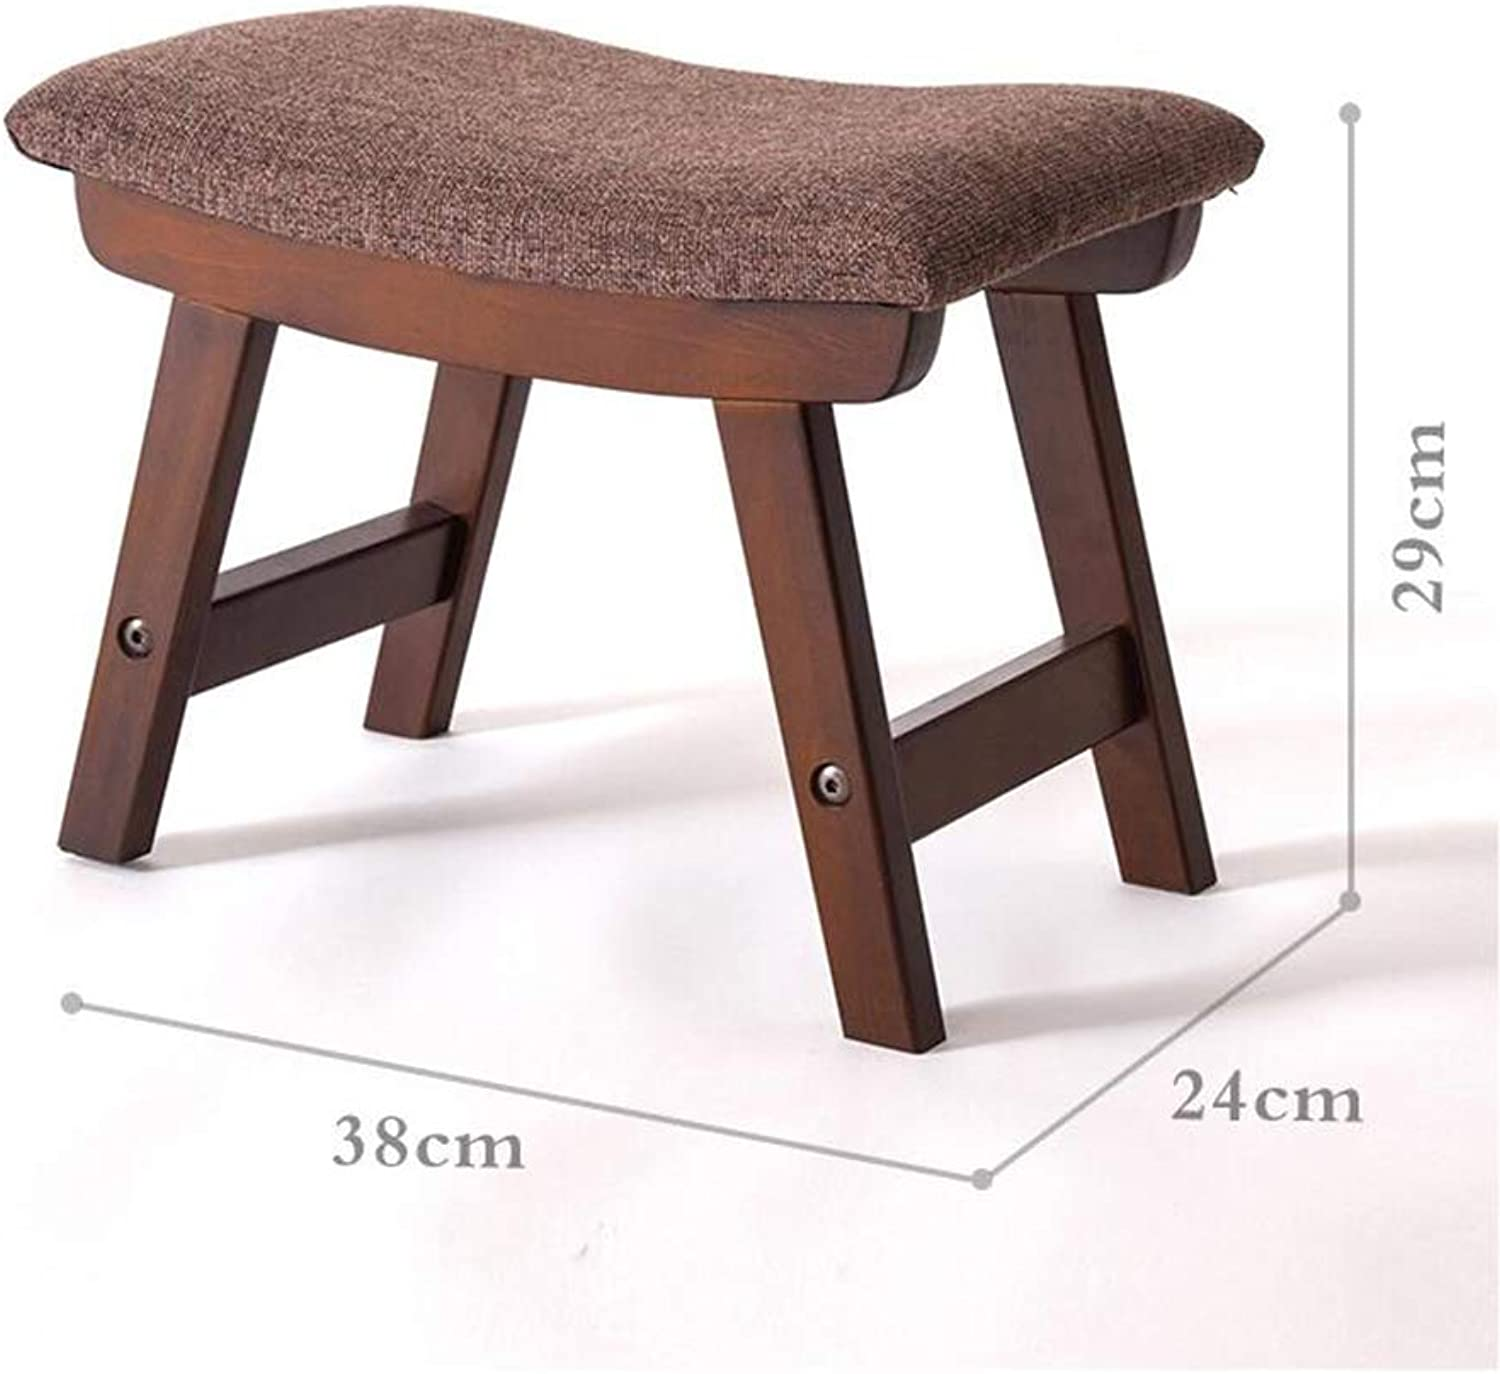 A-Fort DLDL Creative Bench Simple Solid Wood shoes Bench Home Fabric Stool (color   3 )